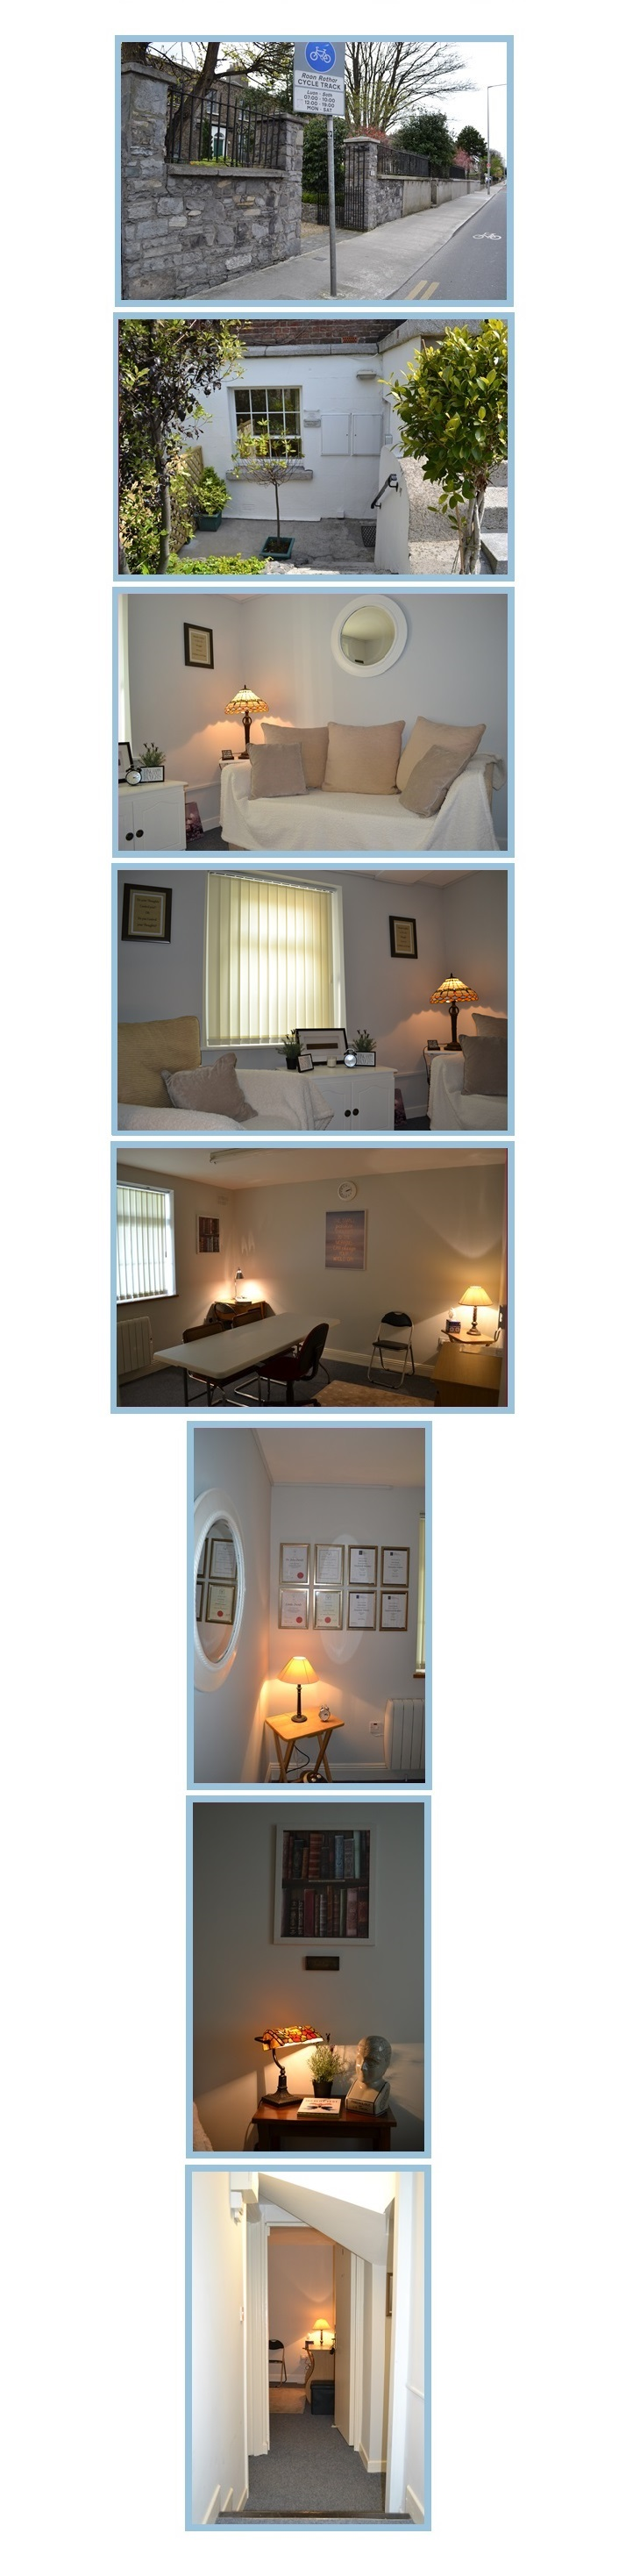 Consulting Rooms Image4